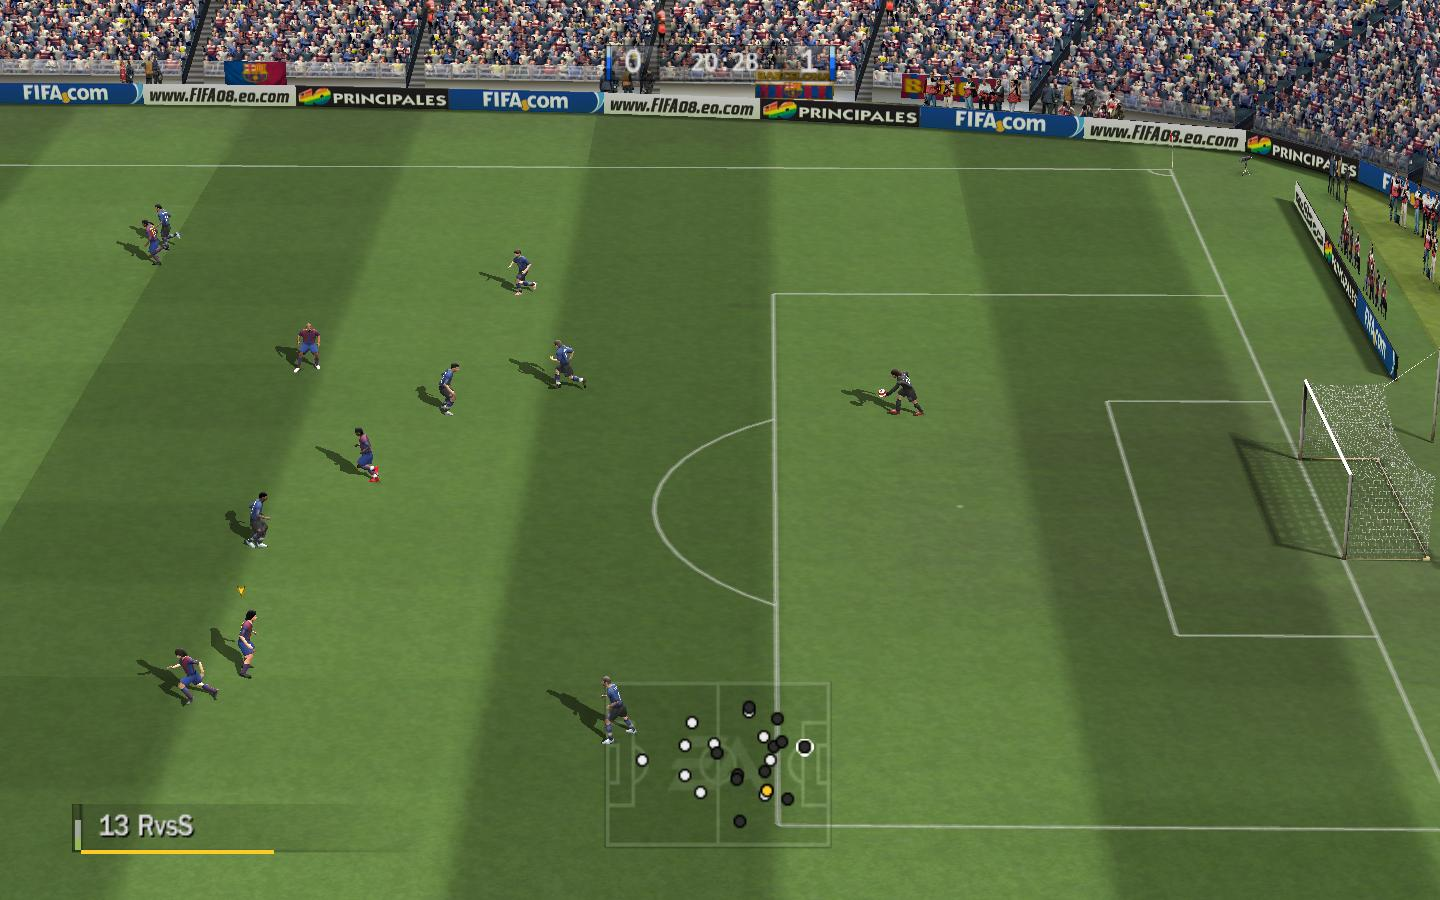 FIFA 08 In-Game